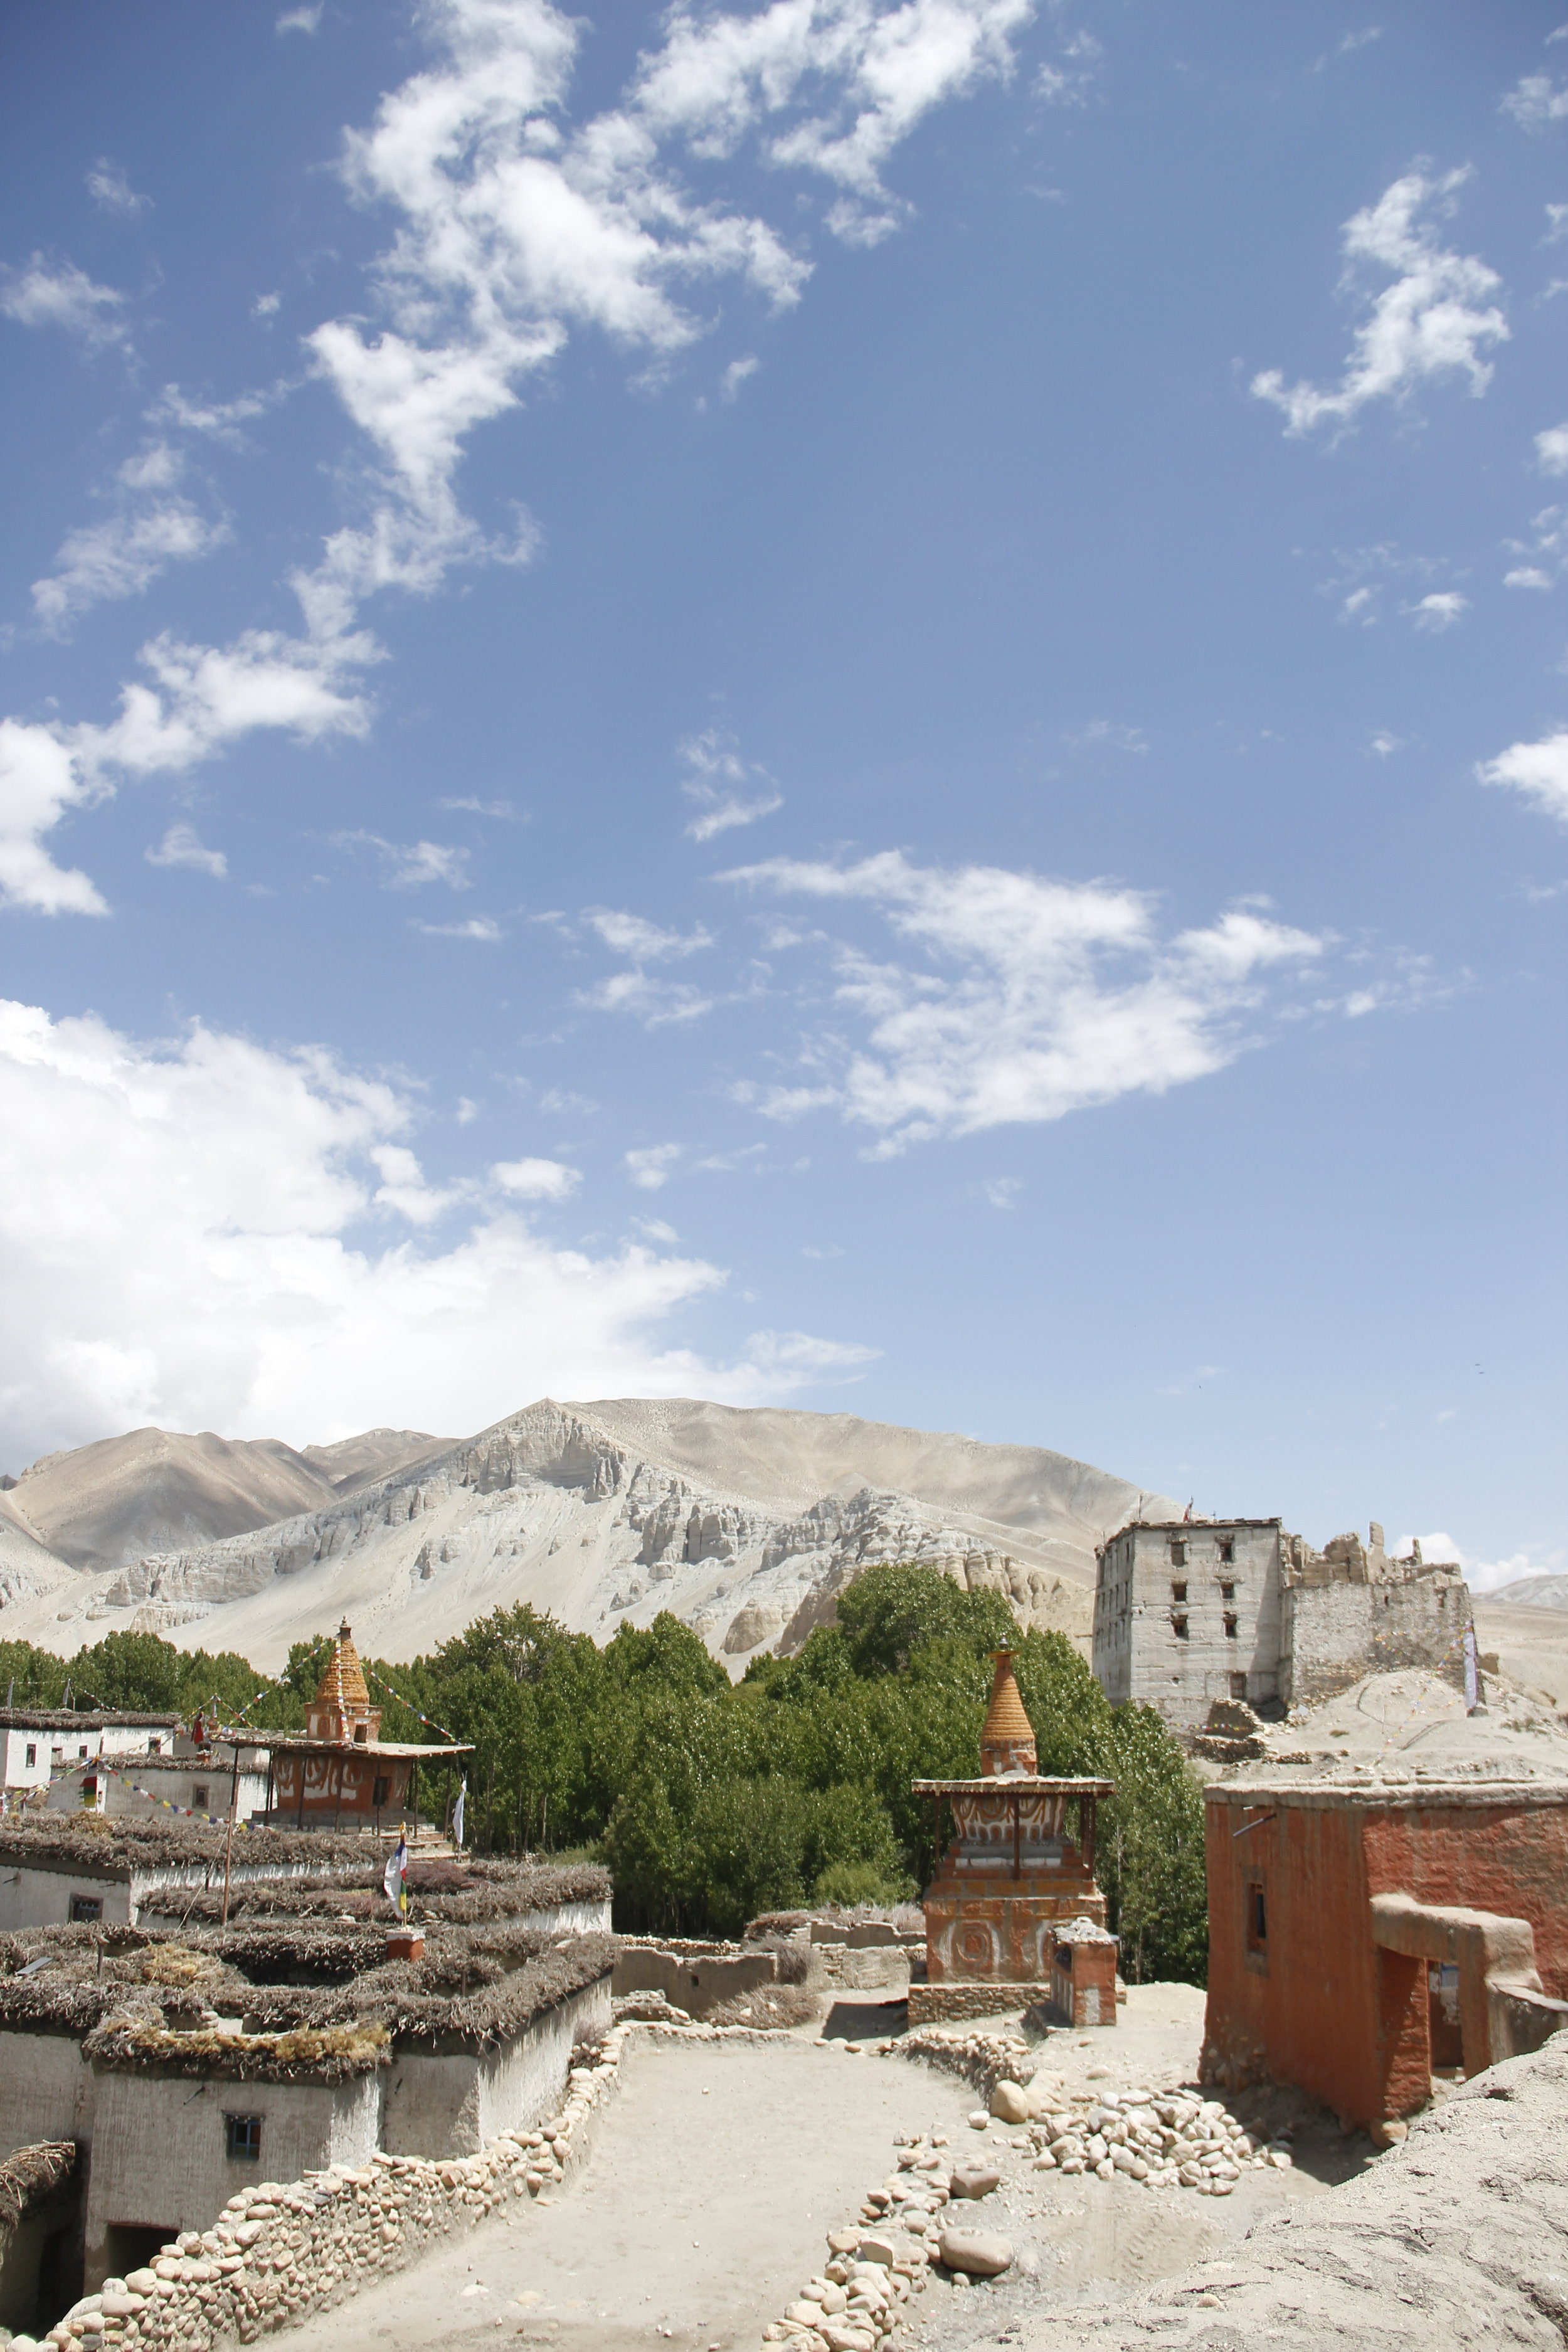 <strong>Studying Abroad in the Himalayas</strong><p>The University of Vermont</p>